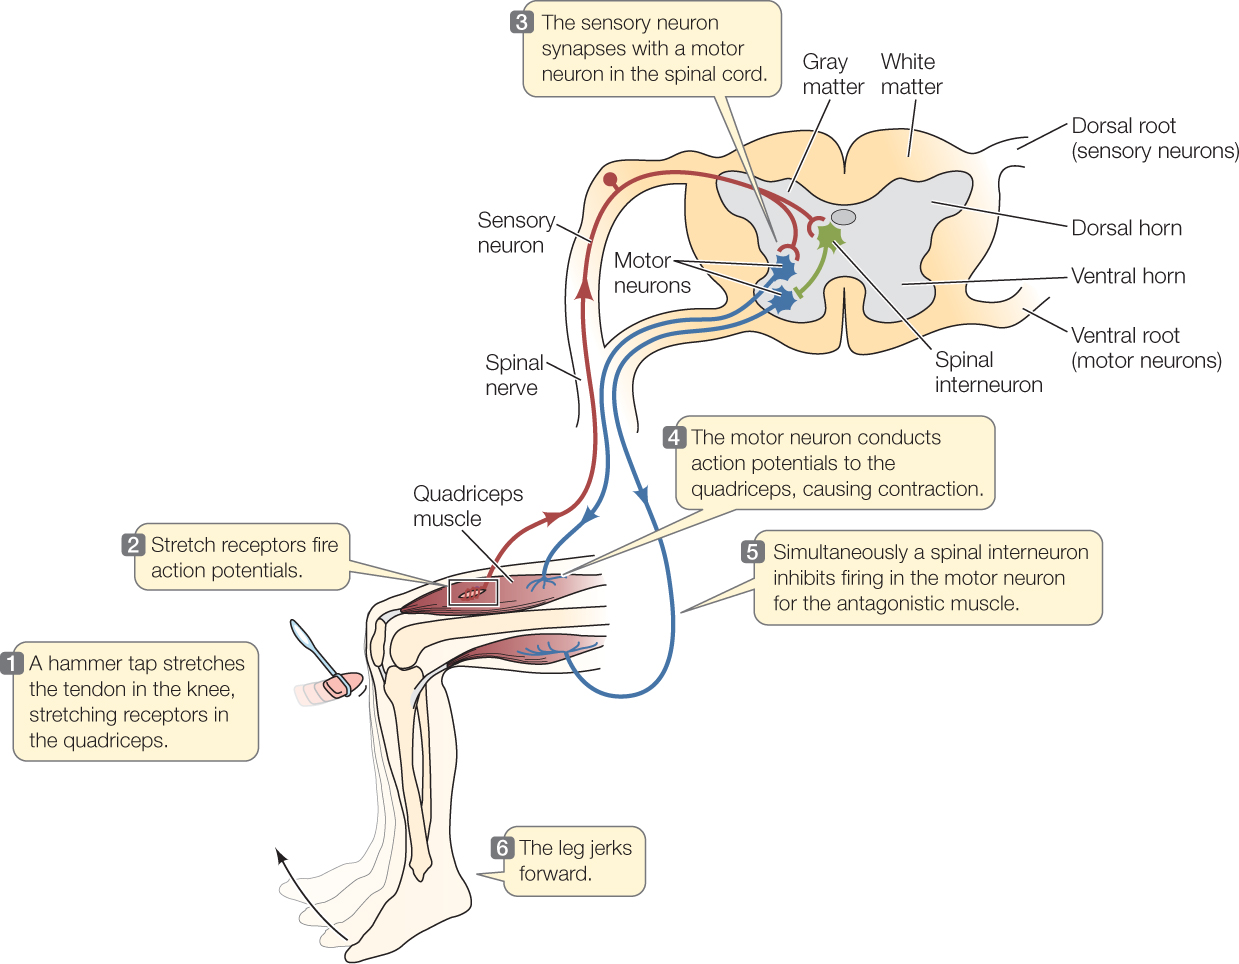 Motor Neuron And Sensory Neuron Diagram